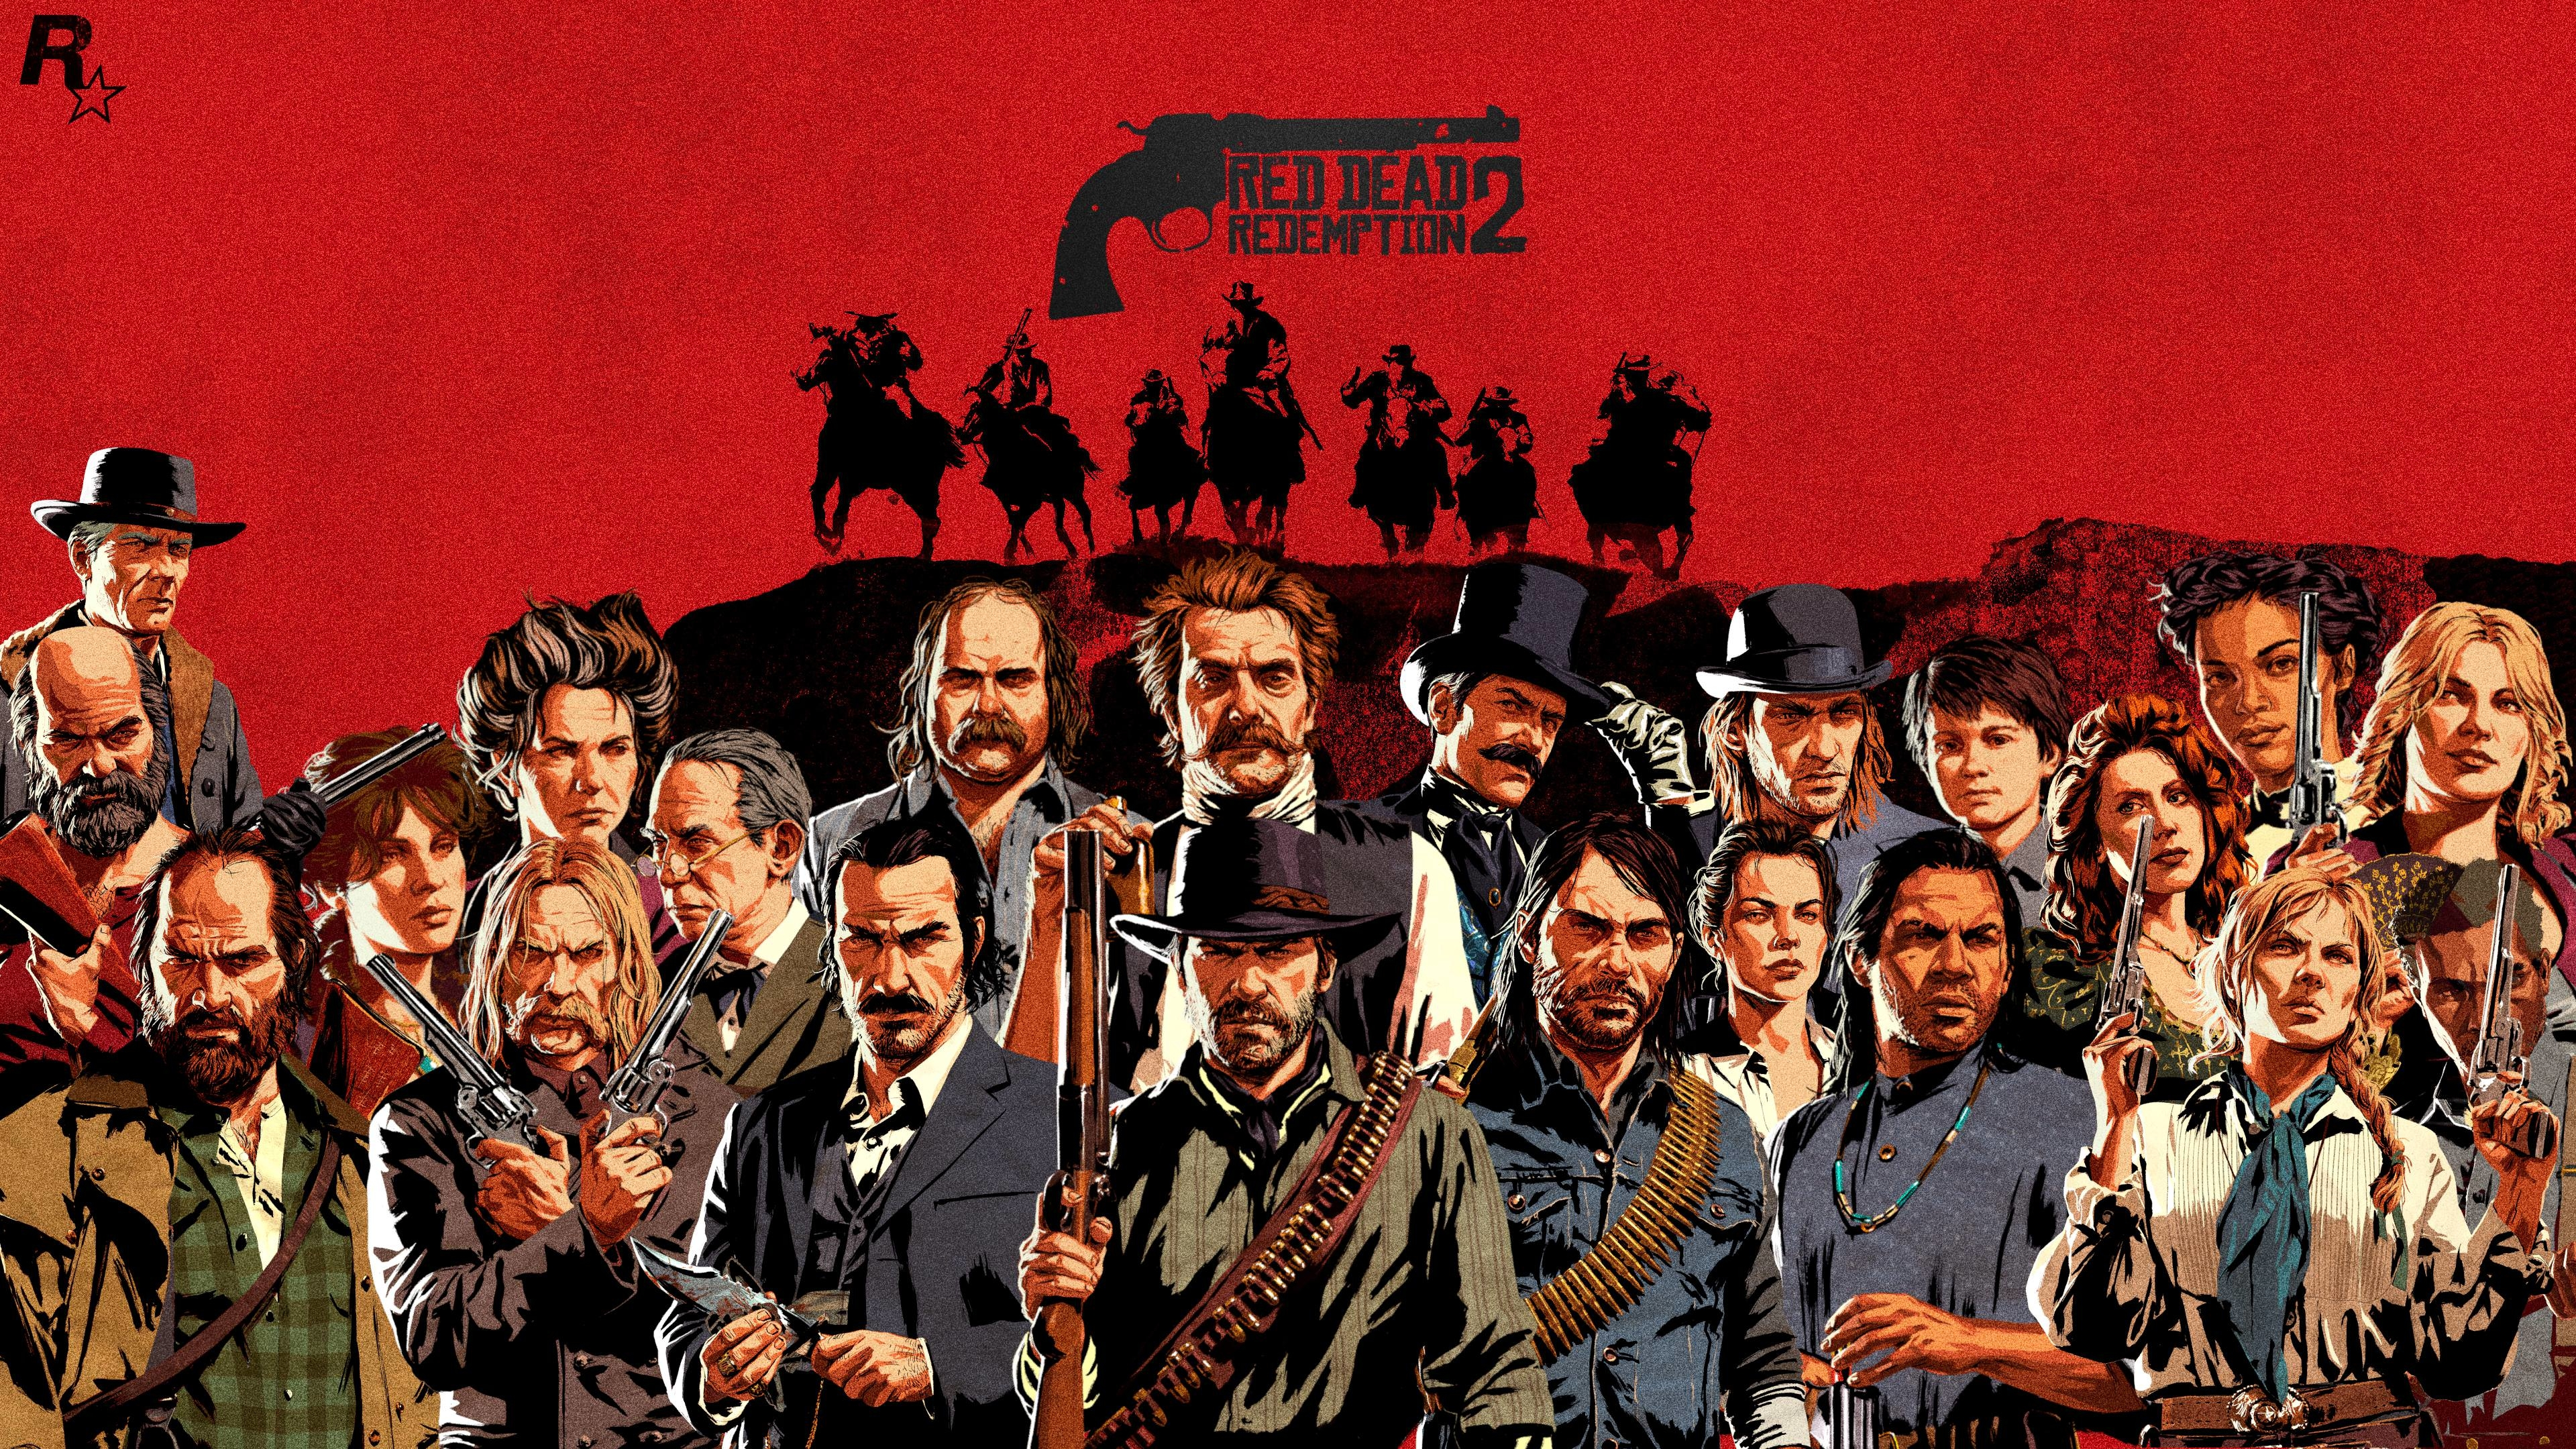 800x600 2019 Red Dead Redemption 2 Game 800x600 Resolution Wallpaper Hd Games 4k Wallpapers Images Photos And Background